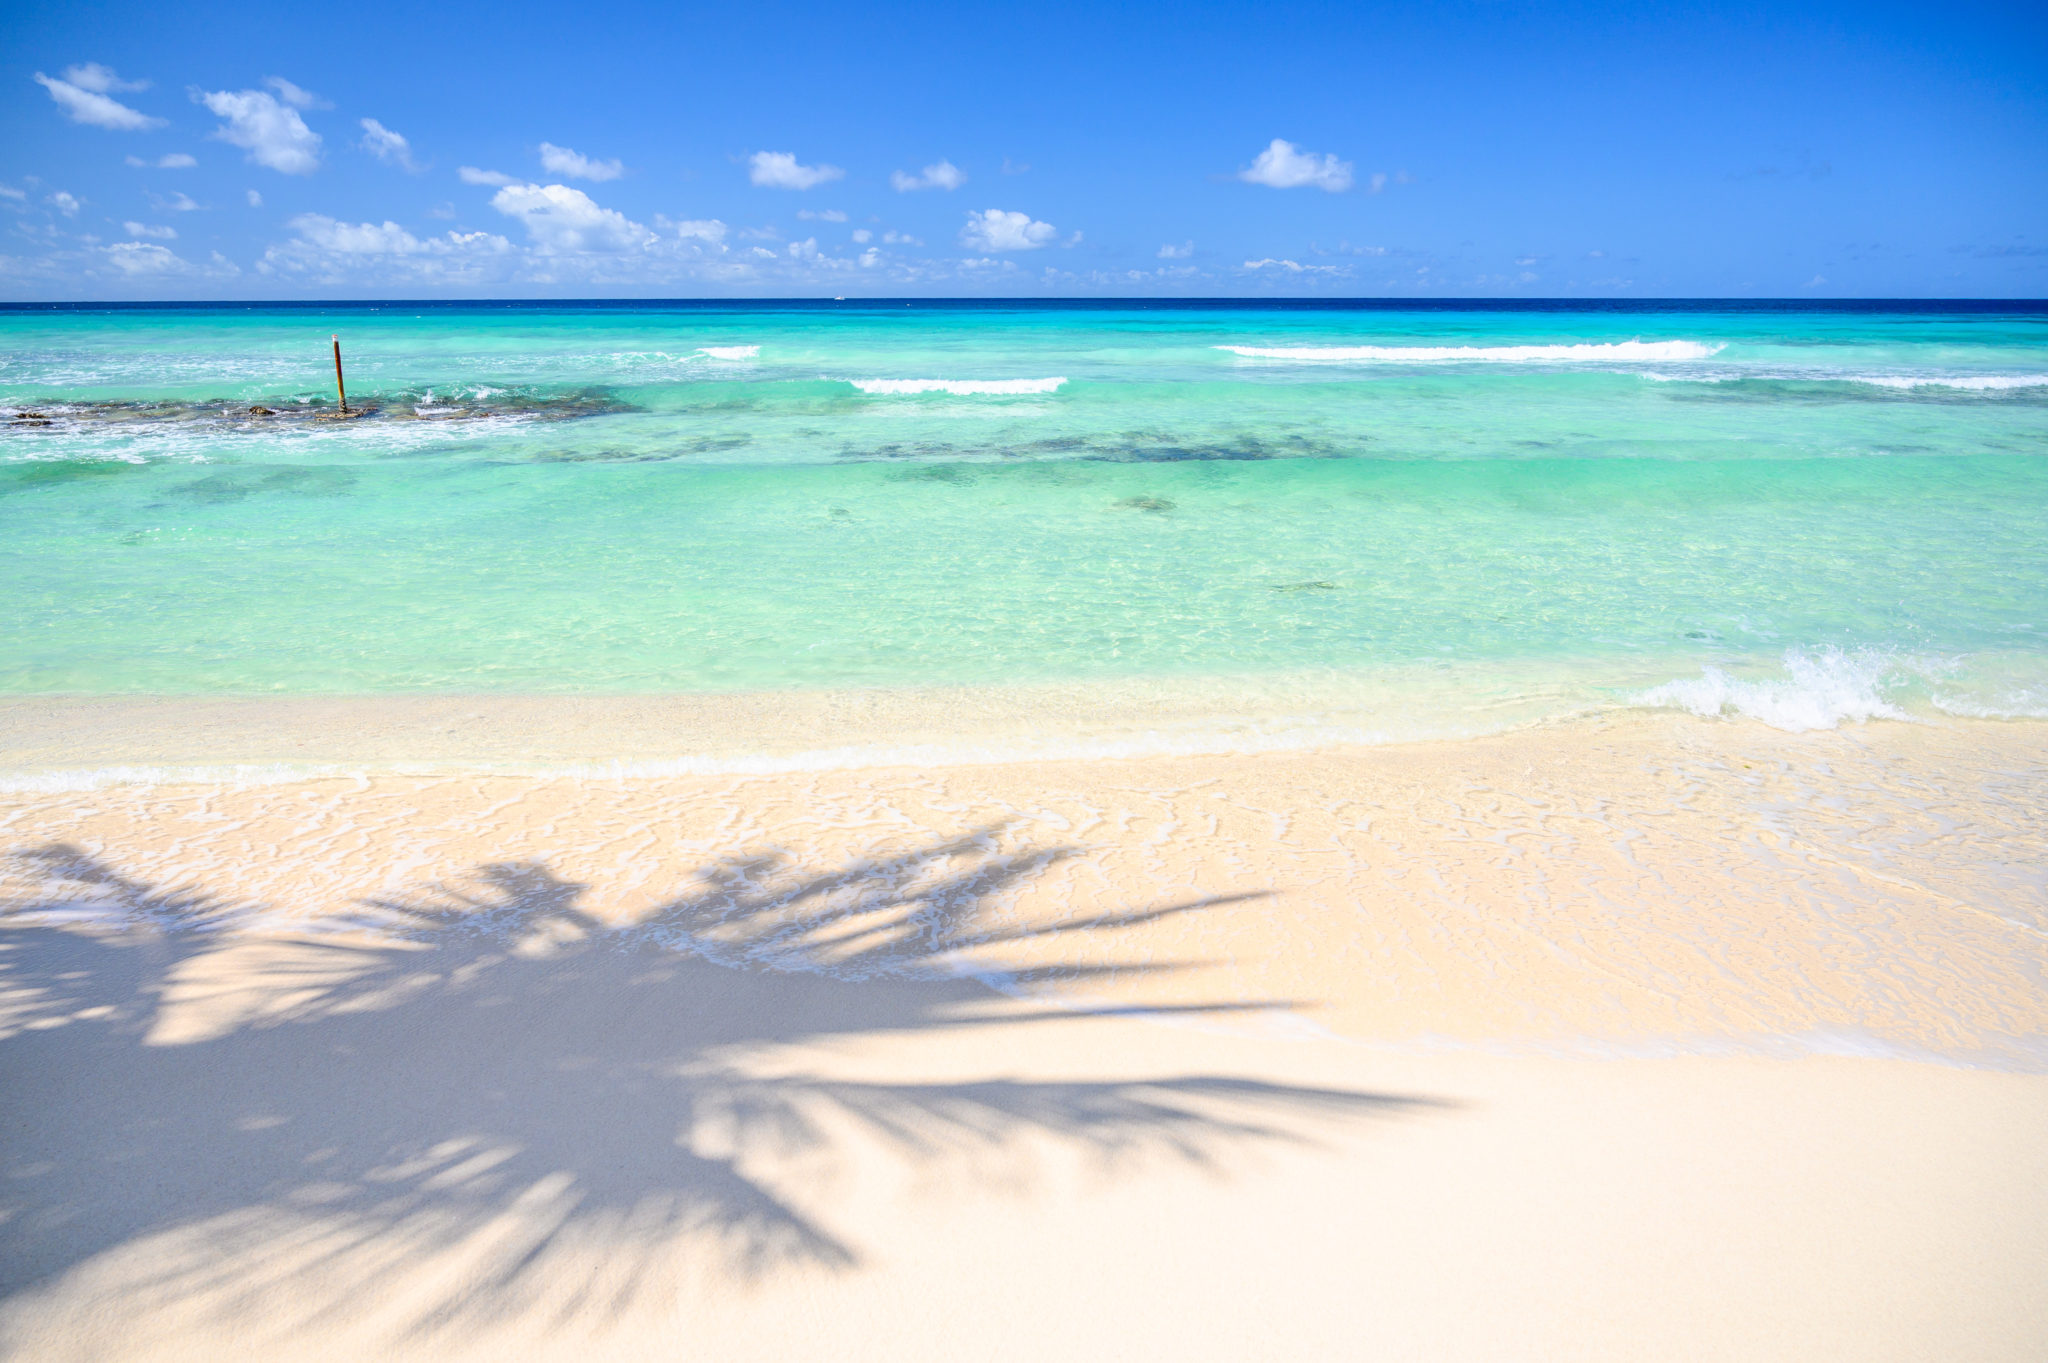 A Barbados Welcome Stamp Could Give Visitors 12 Months on Island